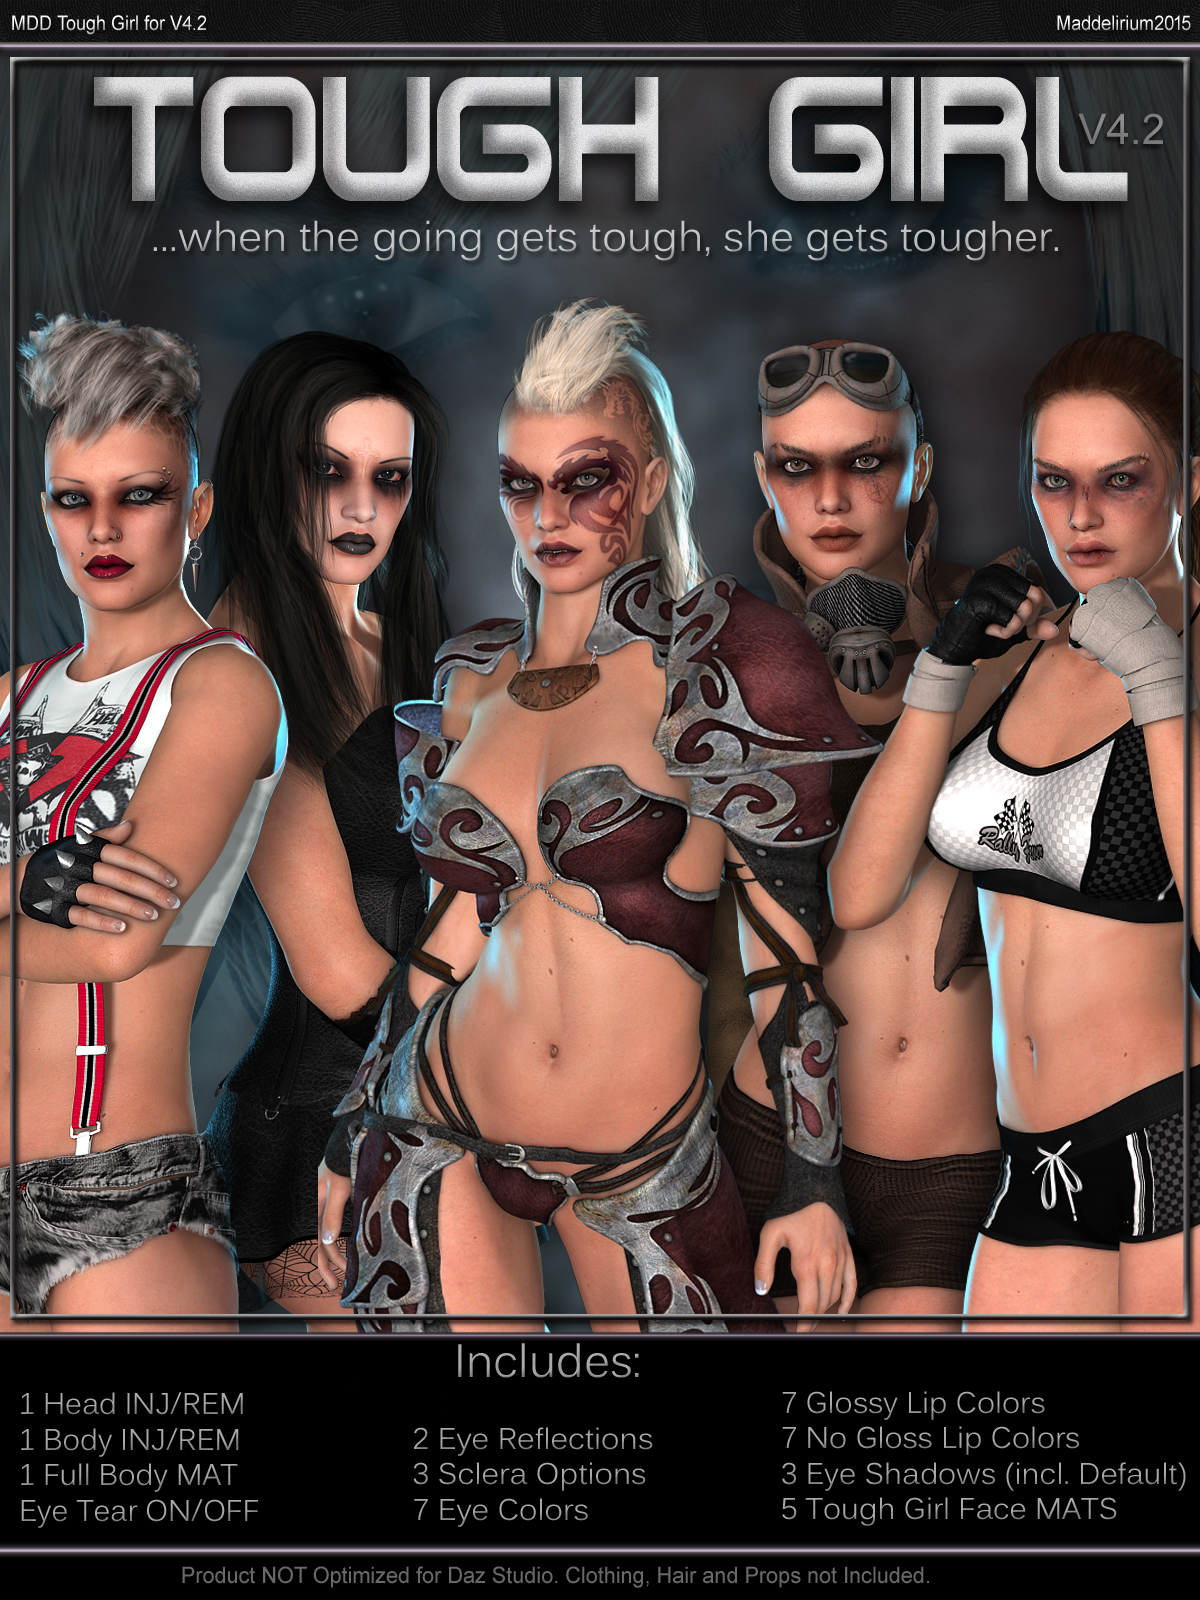 MDD Tough Girl for V4.2 by Maddelirium